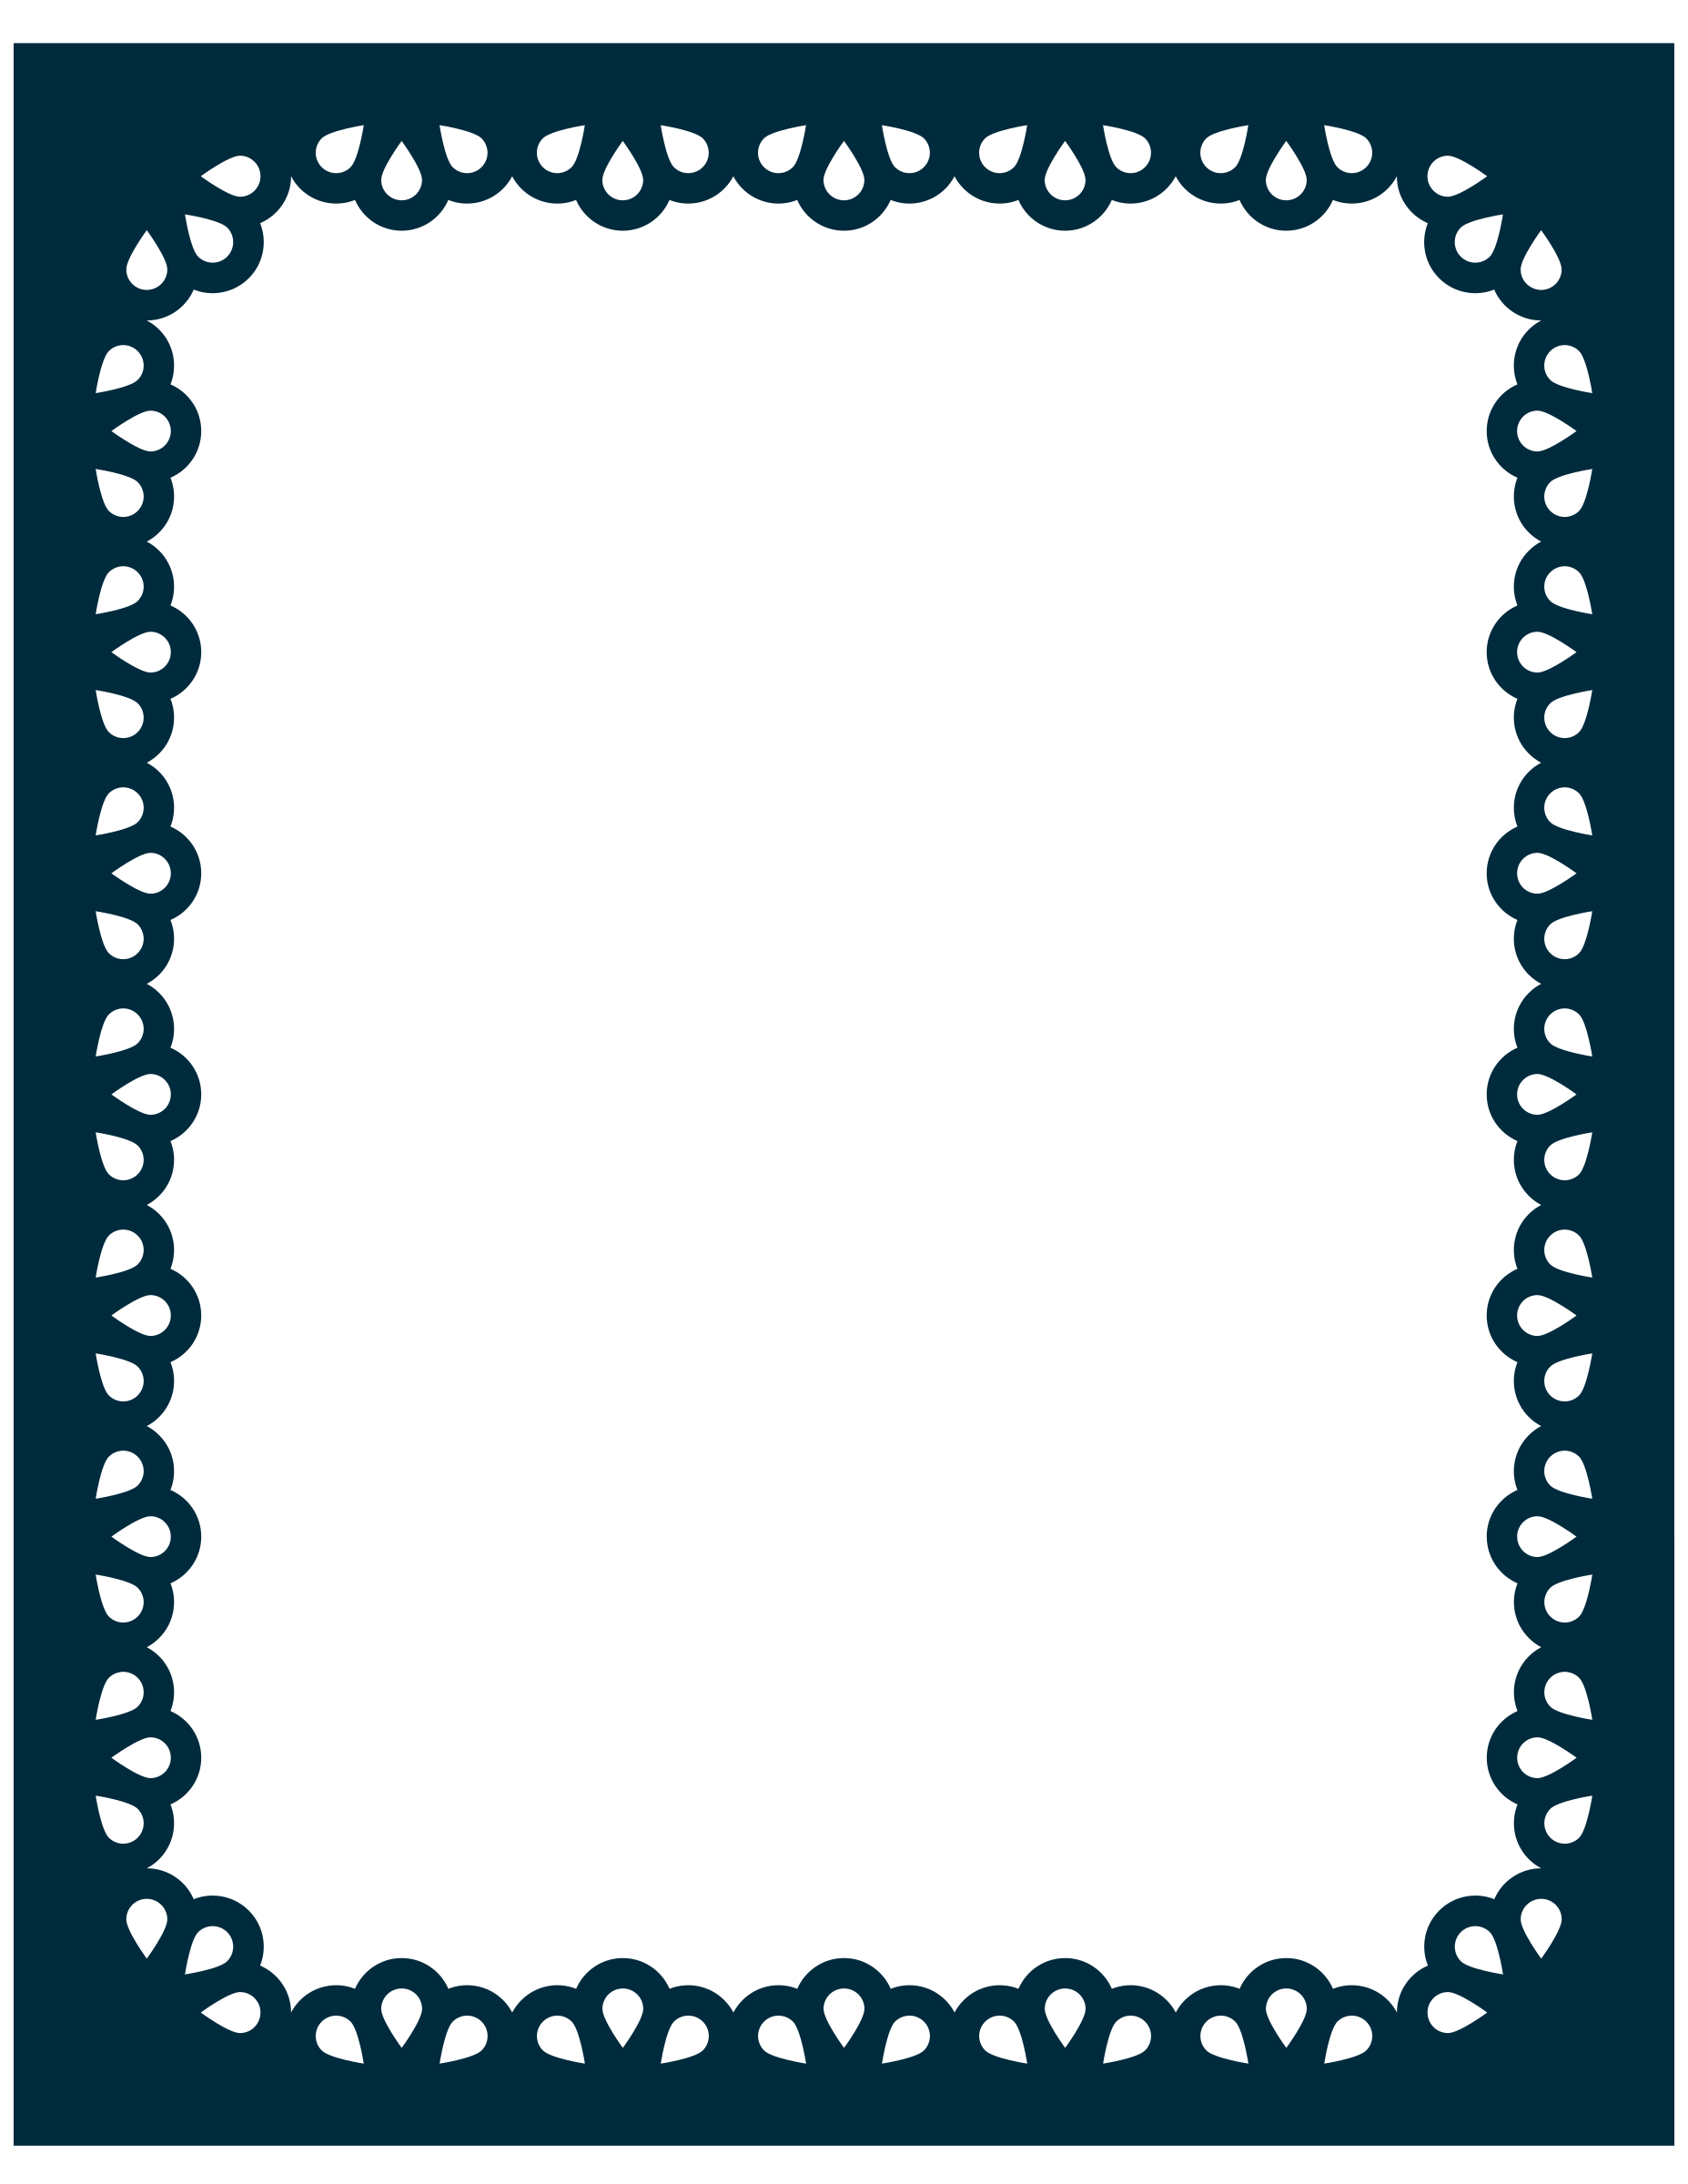 Scalloped border png. Clipart scallop frame big